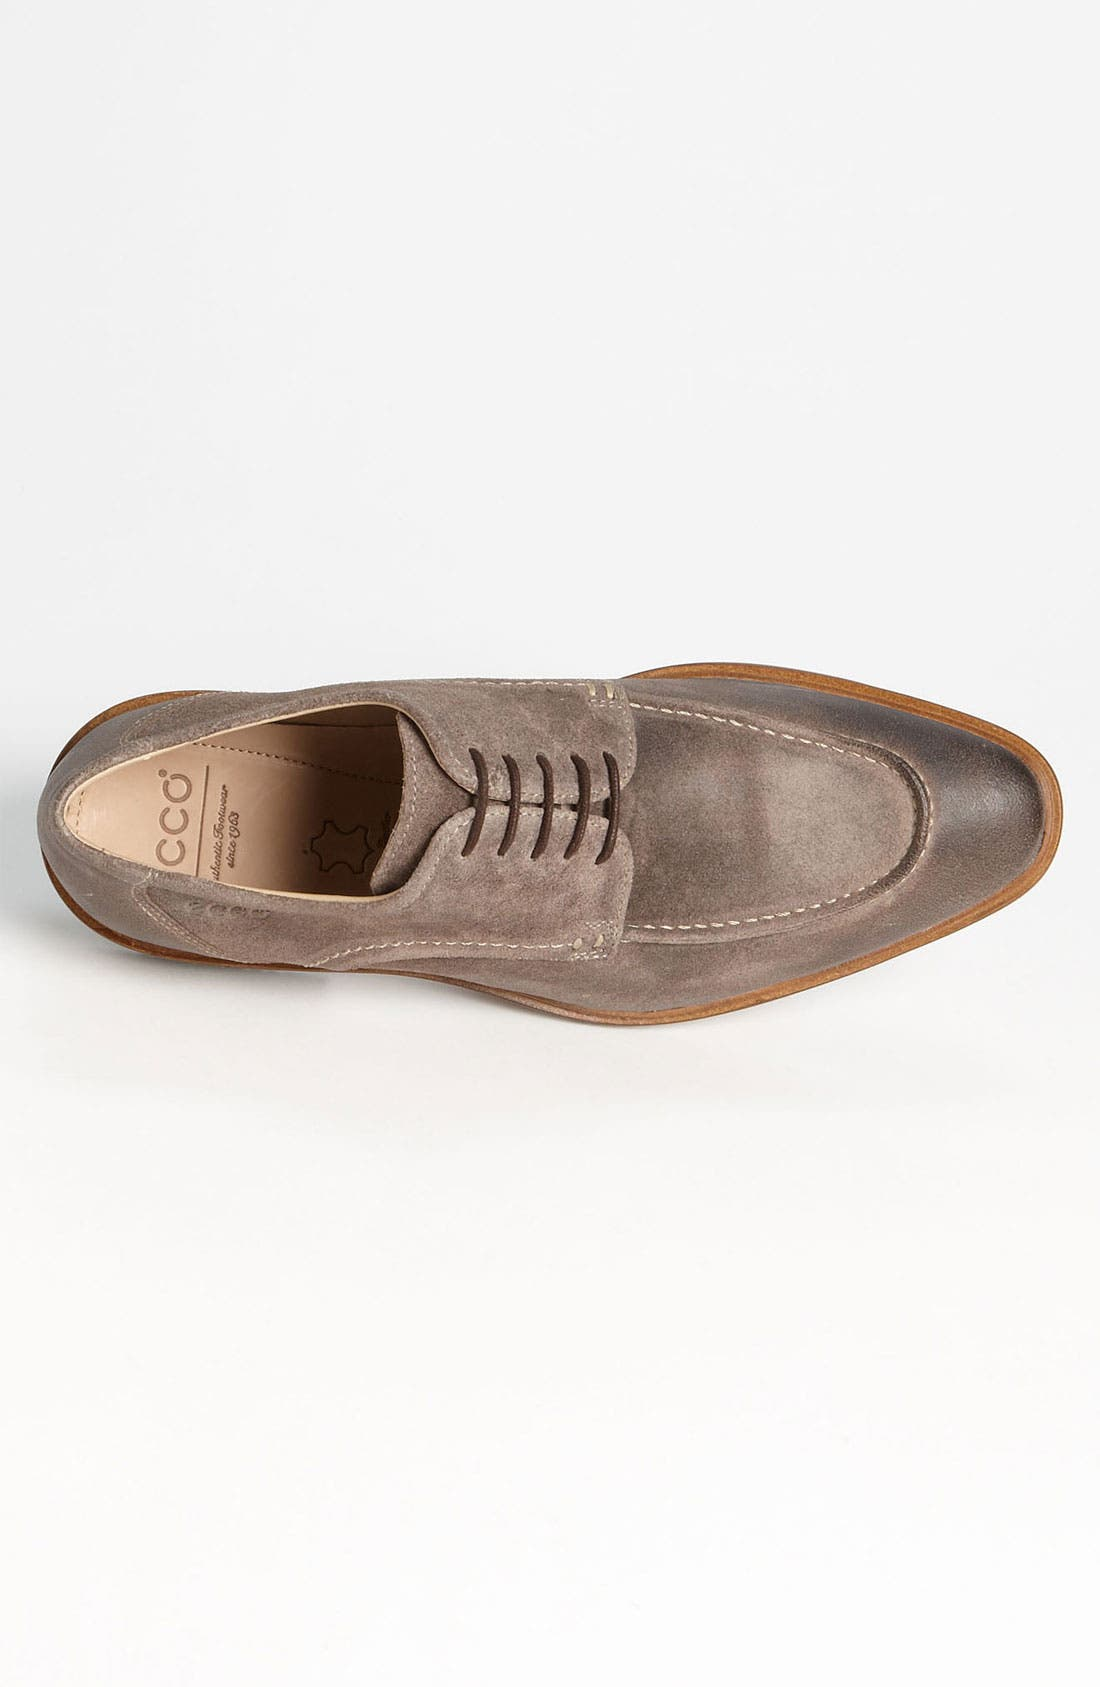 Alternate Image 3  - ECCO 'Pedroso' Apron Toe Derby